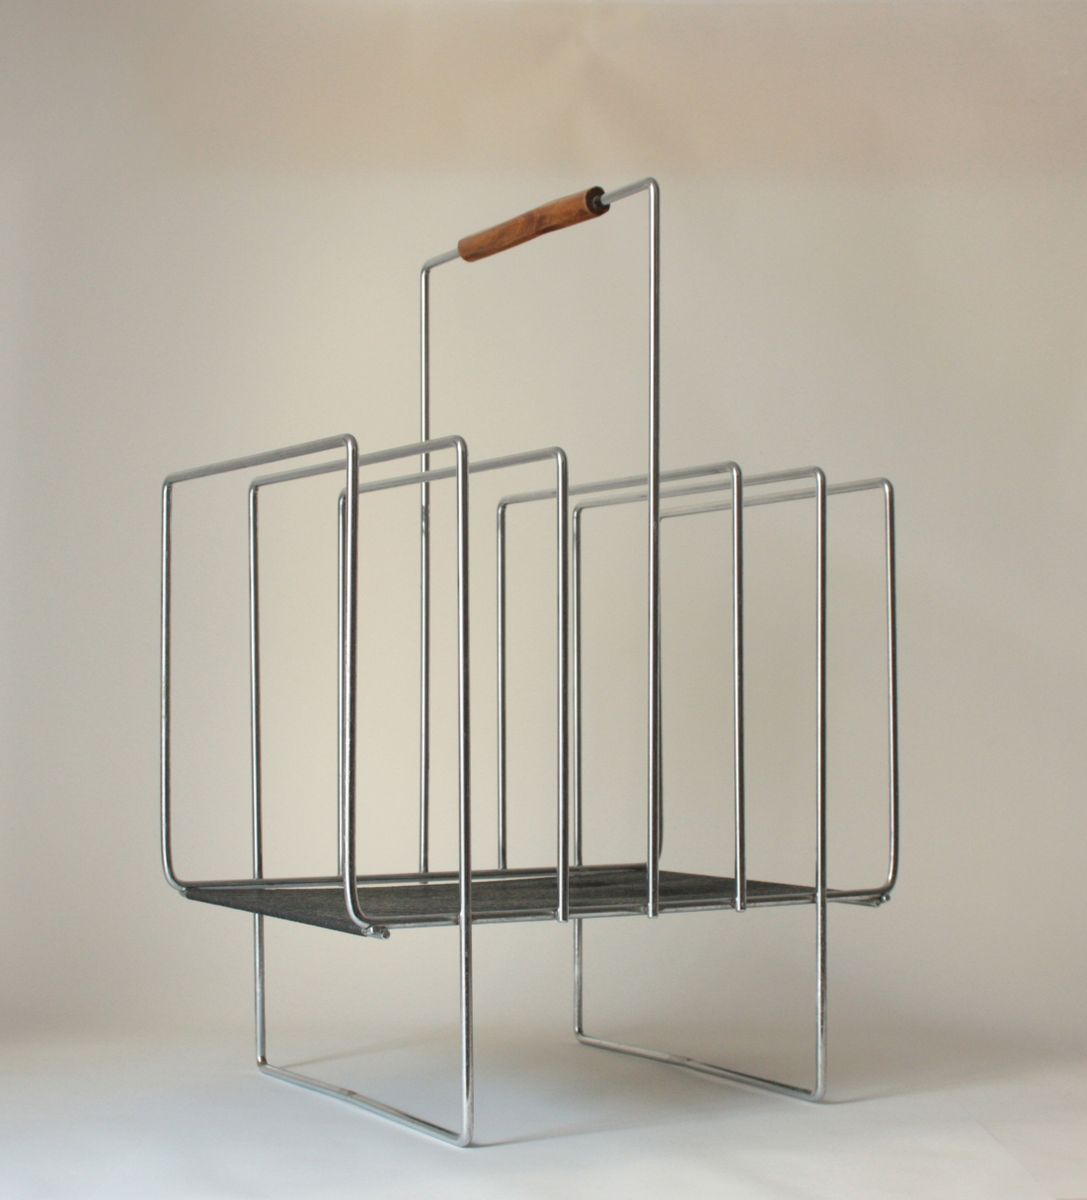 Mid-Century Chrome Plated Wire Magazine Rack, 1970s for sale at Pamono